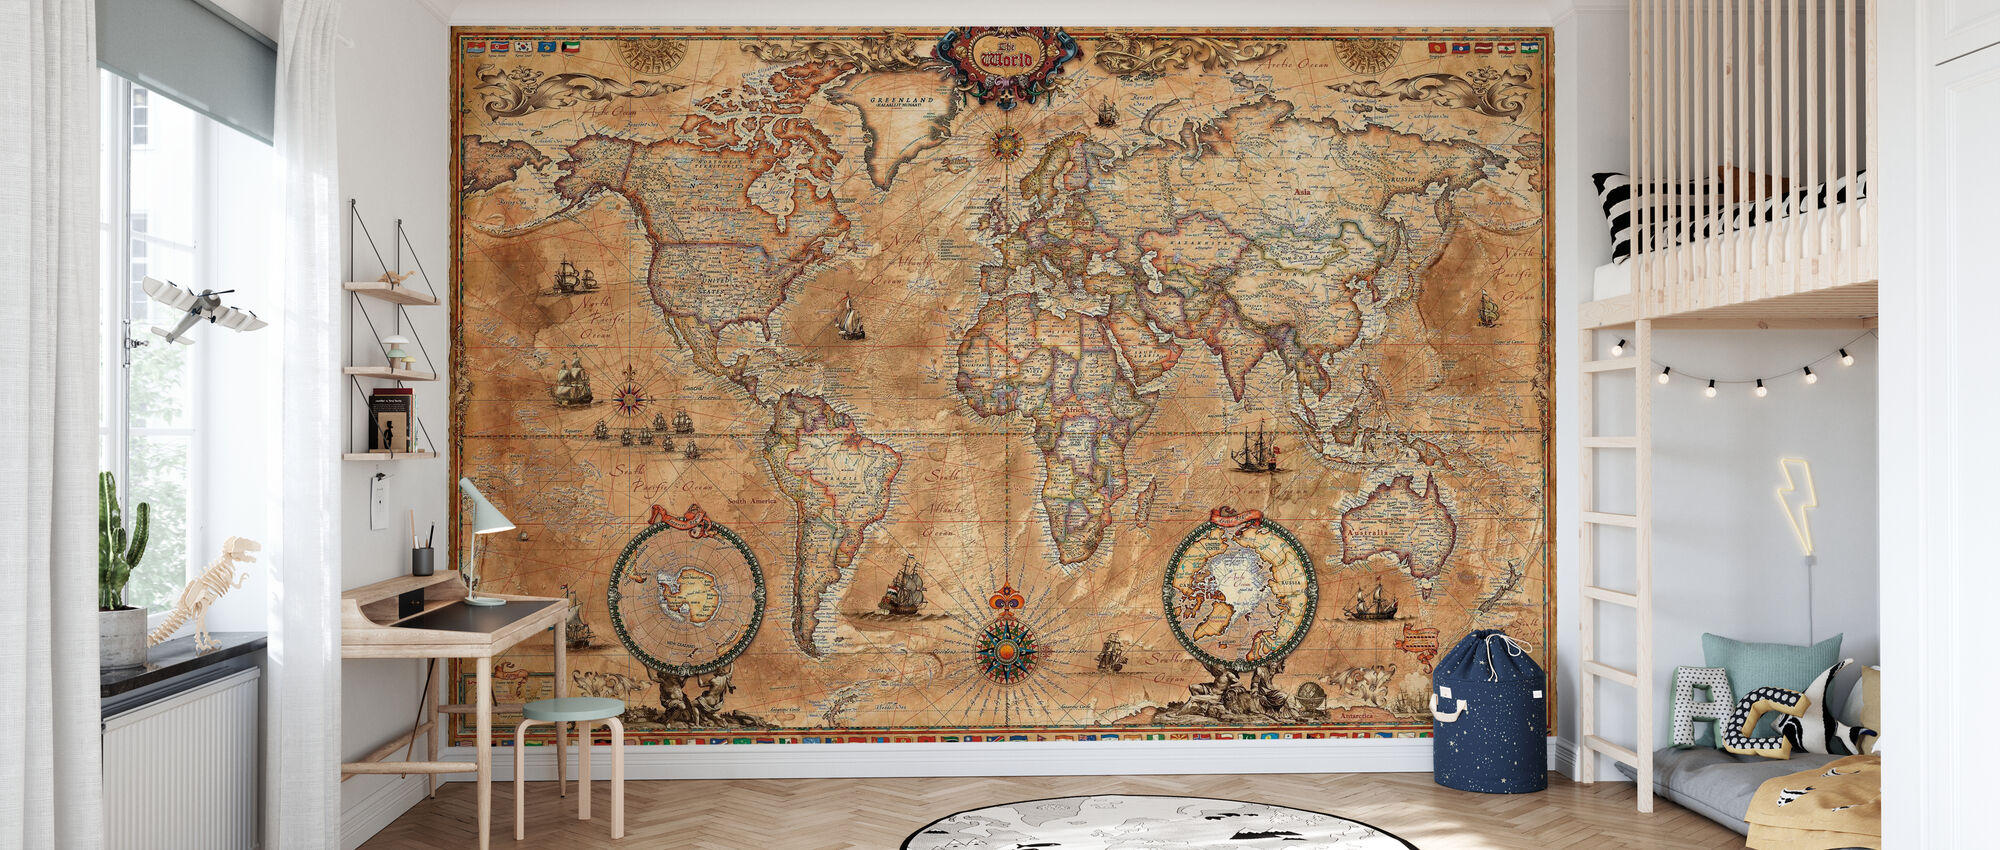 Pergament Map - Wallpaper - Kids Room